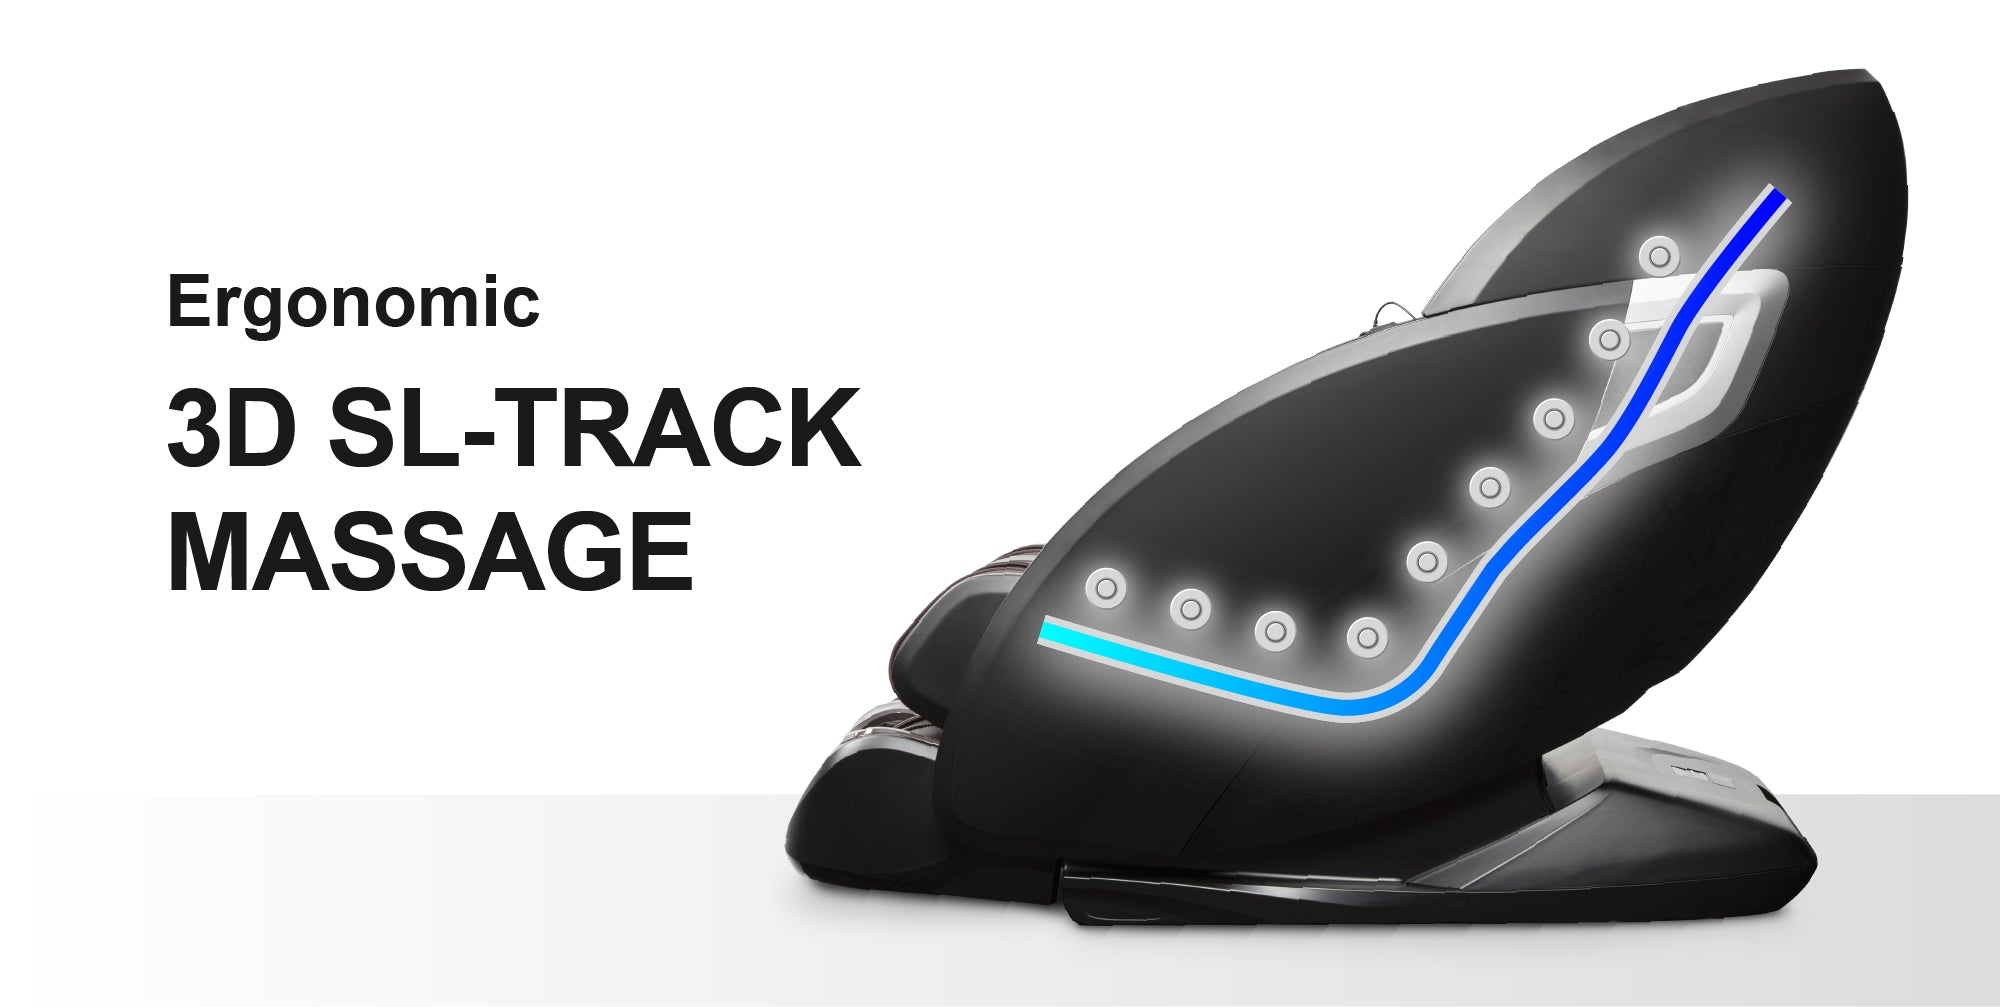 Ergonomic 3D SL-Track Massage